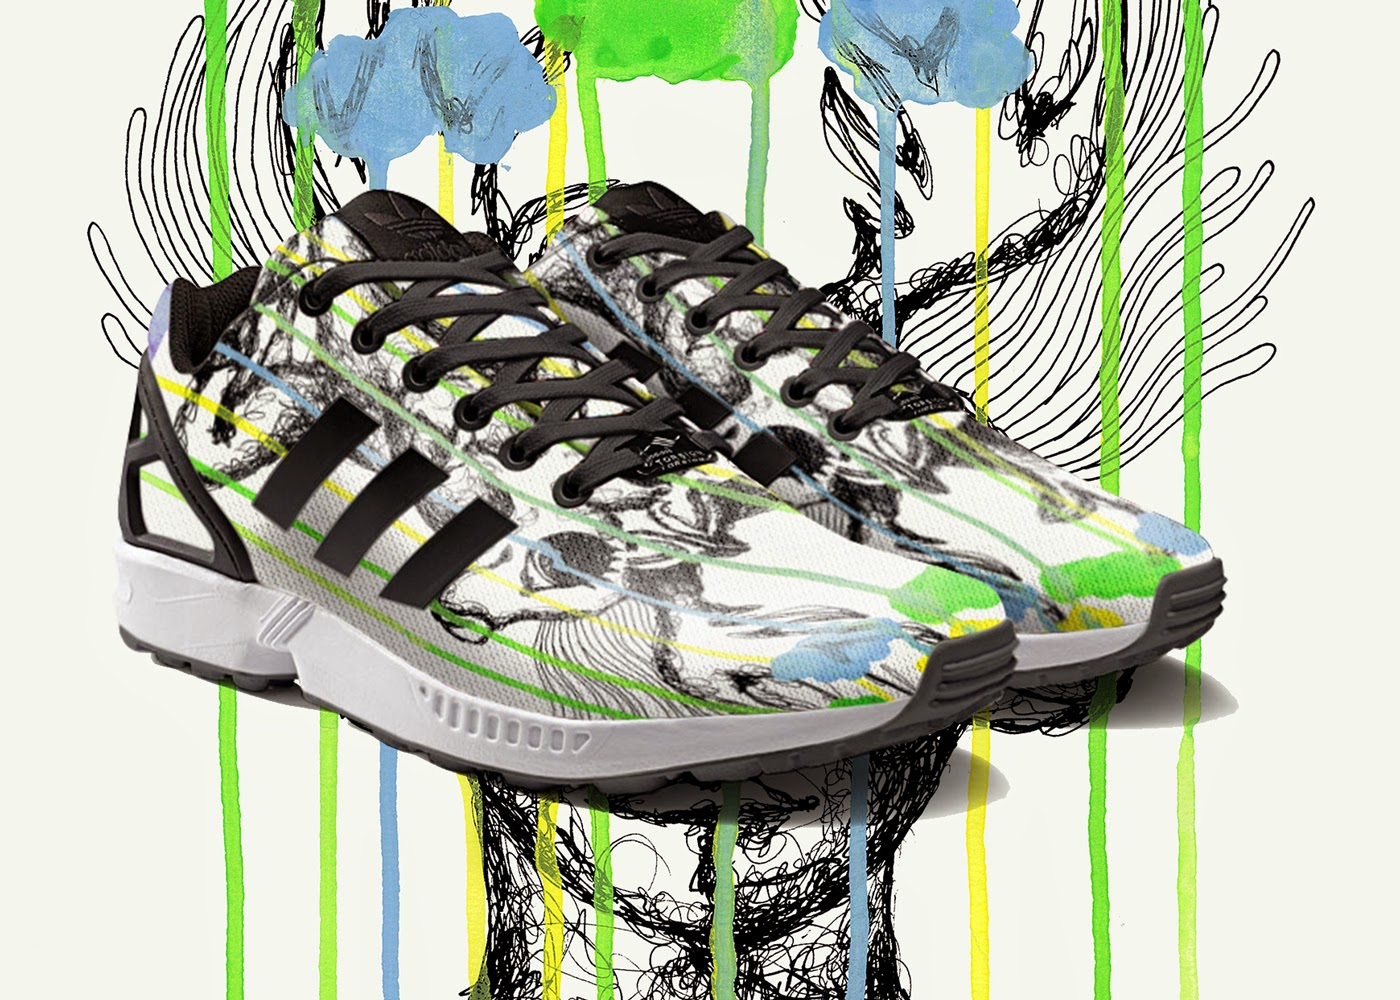 09-mi-Adidas-ZX-Flux-Shoe-App-to-Customise-your-Shoes-www-designstack-co